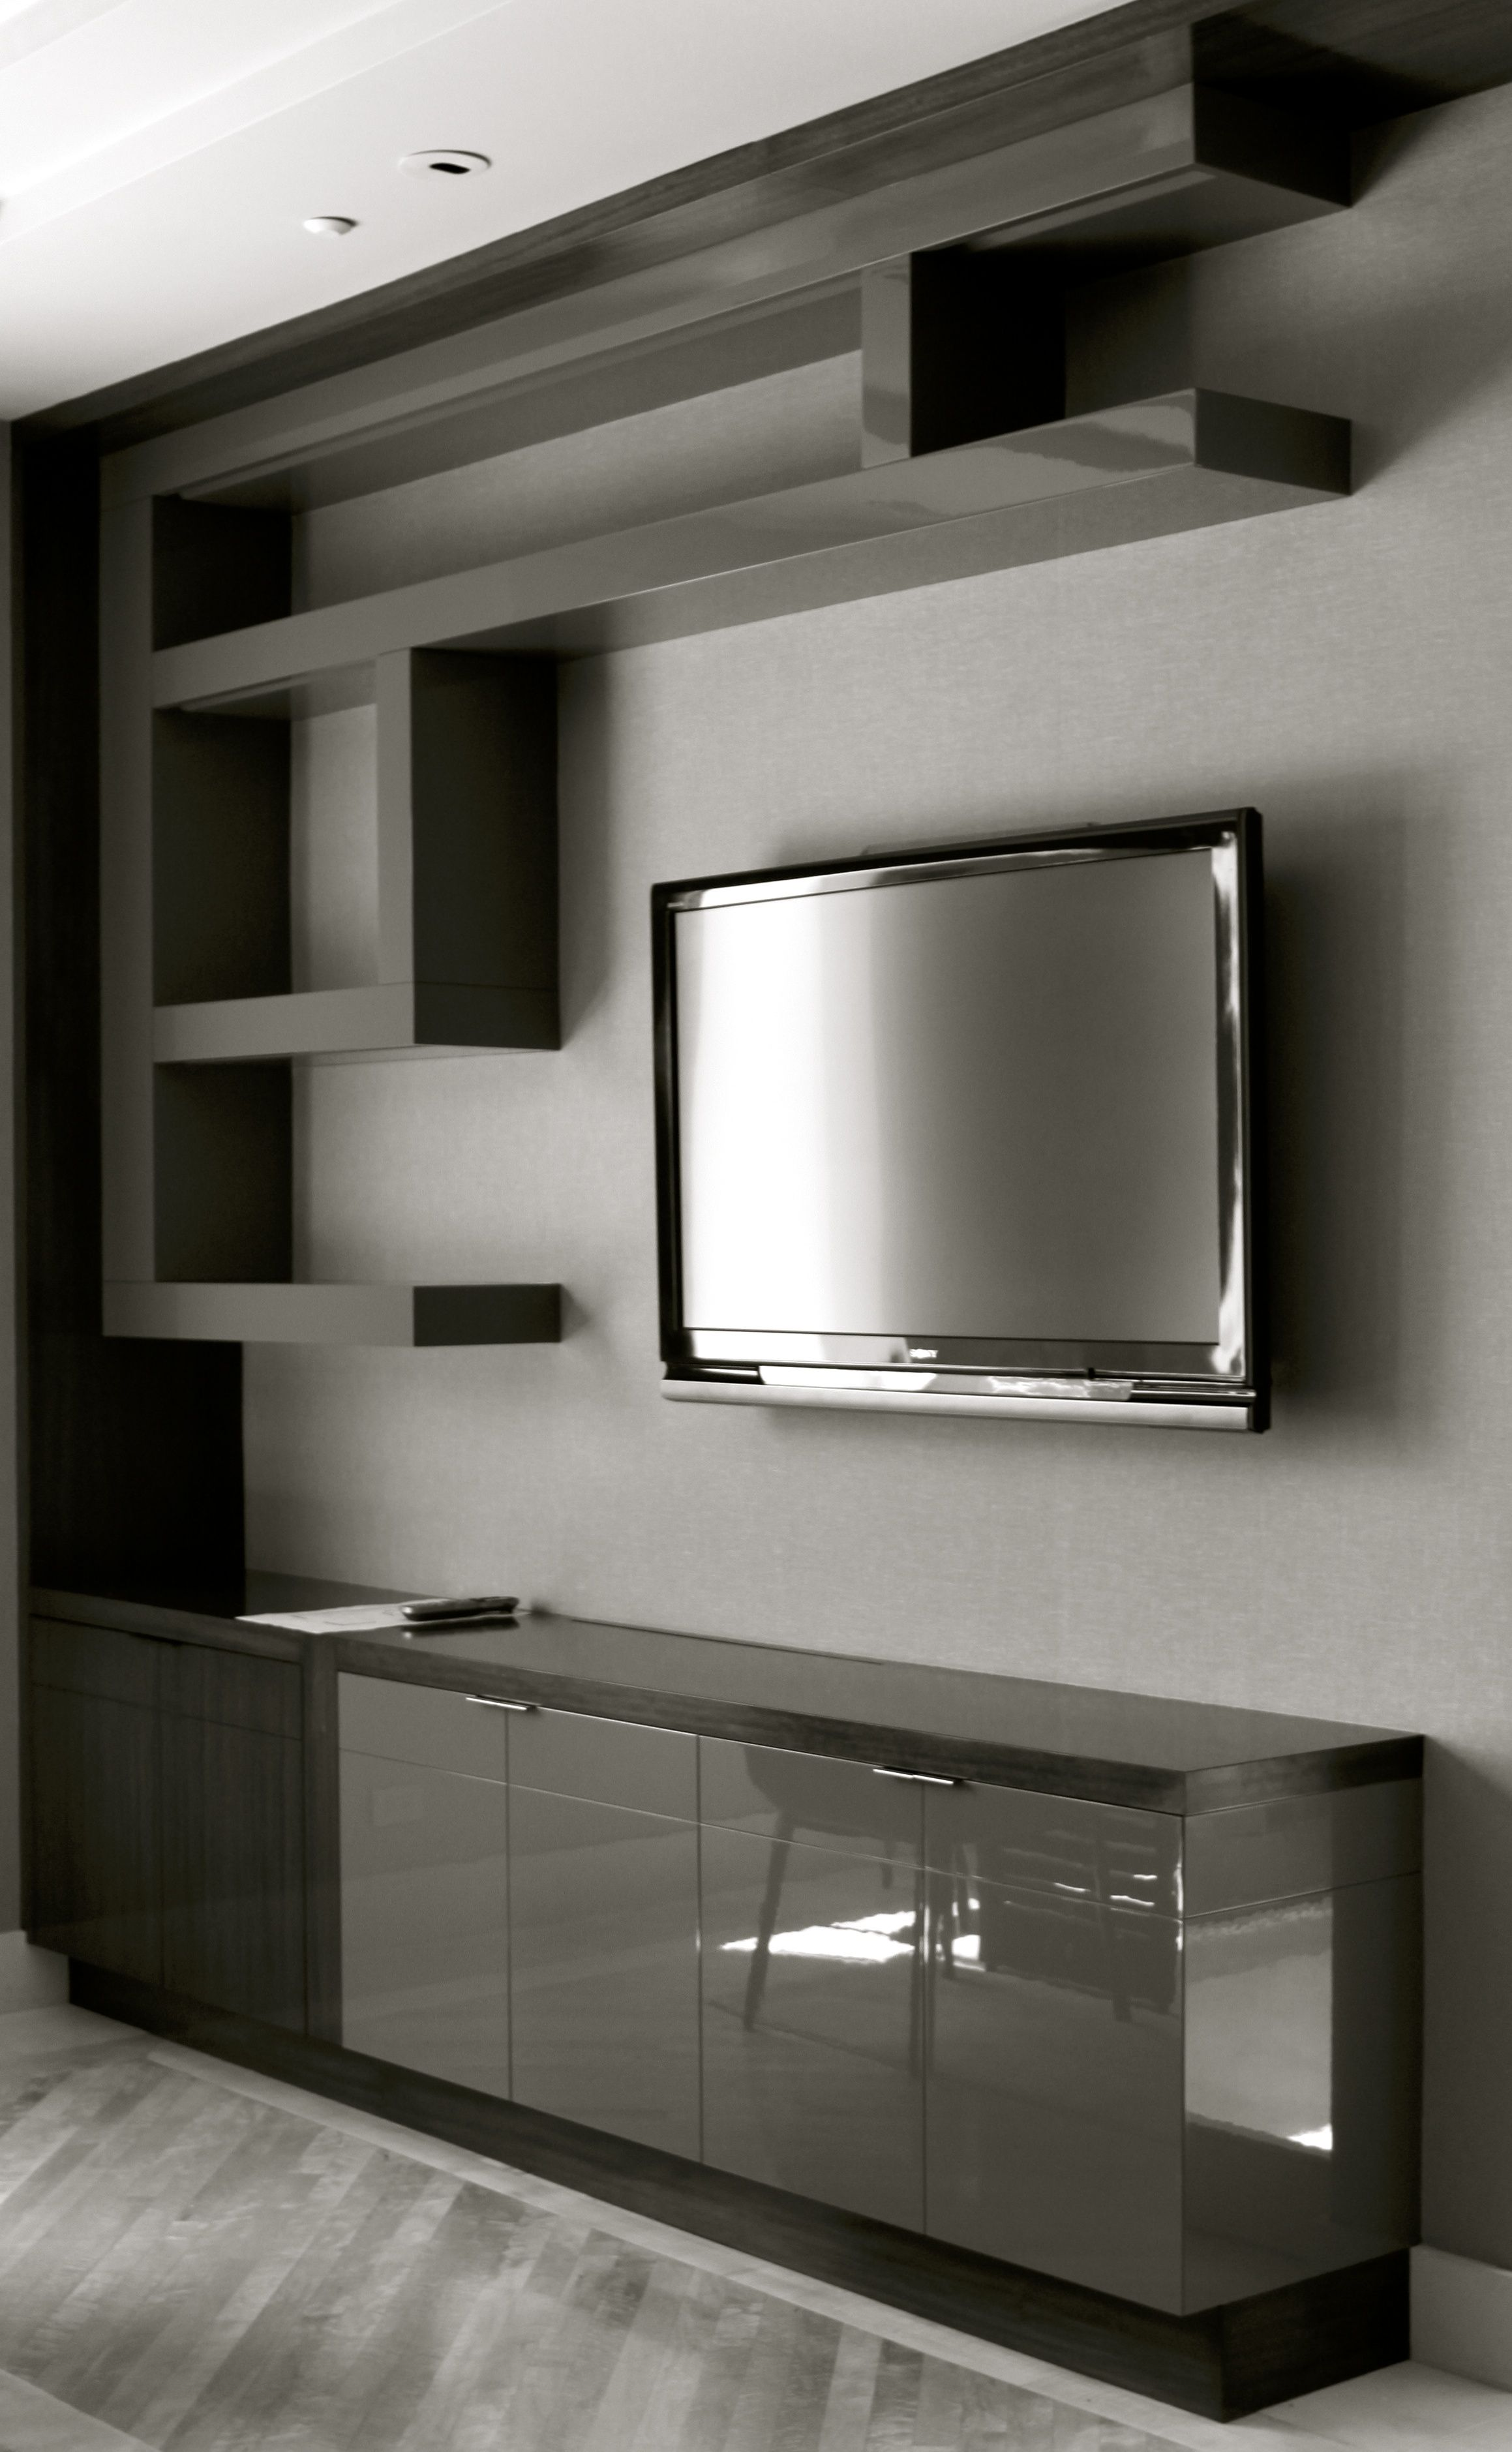 Tv Hall Cabinet Living Room Furniture Designs Wooden Tv: Sculptural Lacquered Shelving & Oriental Wood Cabinetry